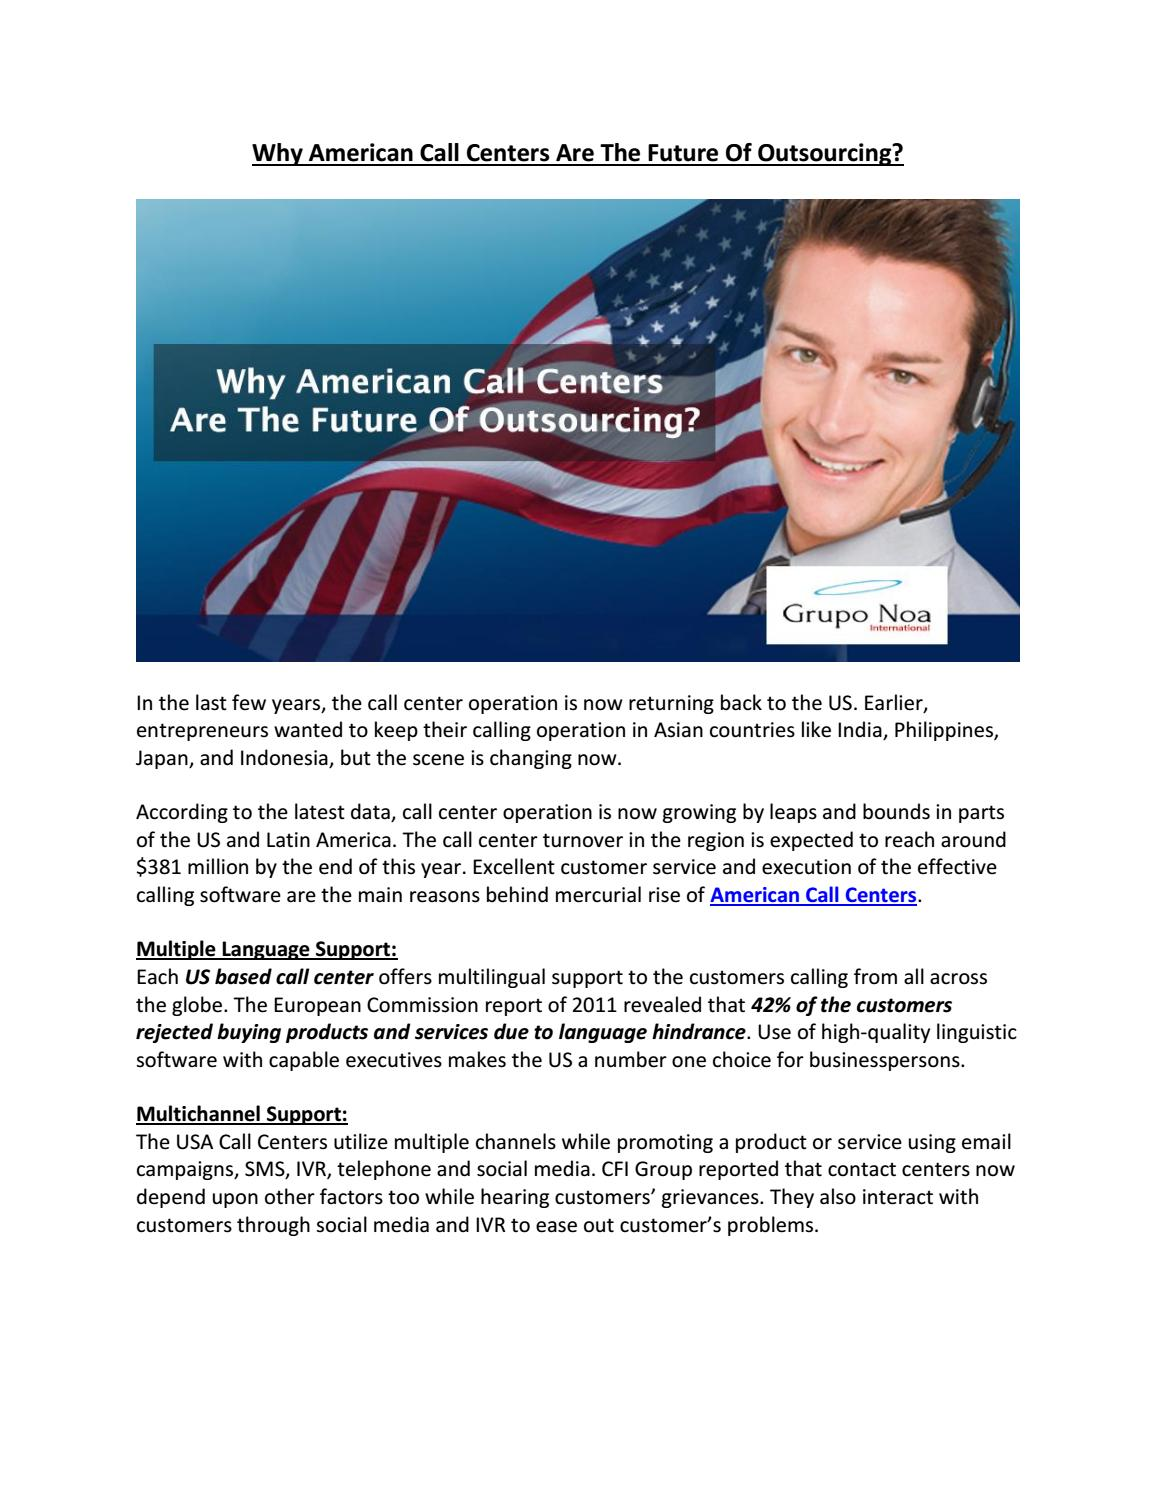 Why American Call Centers Are The Future Of Outsourcing? by Grupo